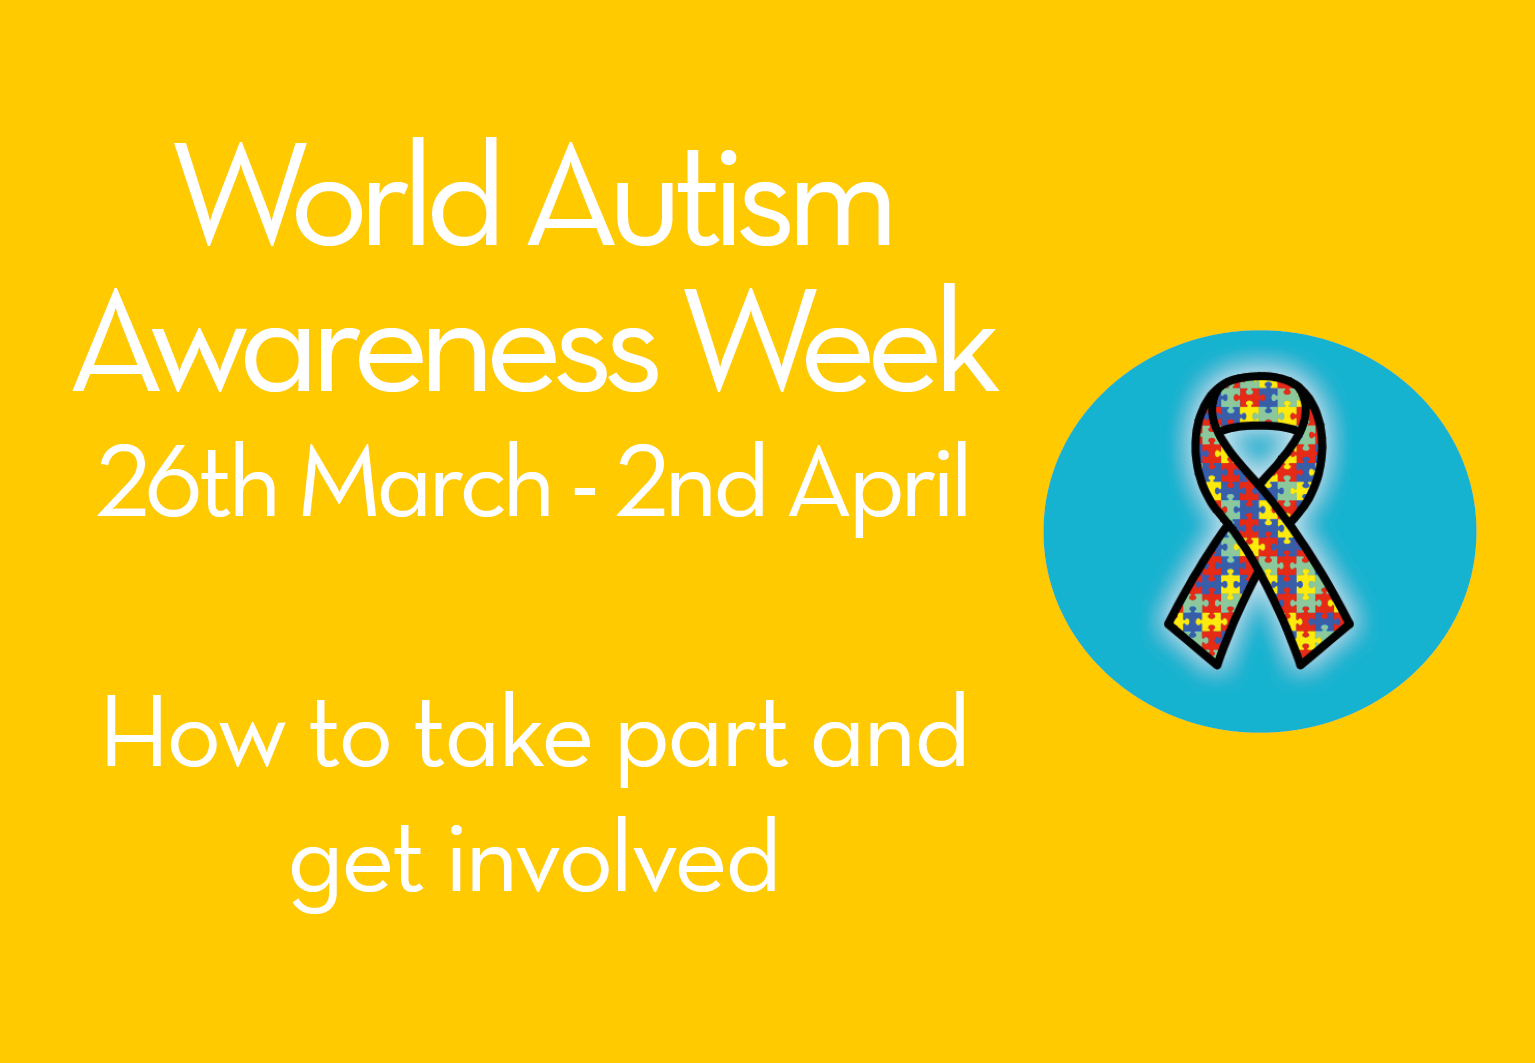 Take Part in World Autism Awareness Week, 26th March – 2nd April